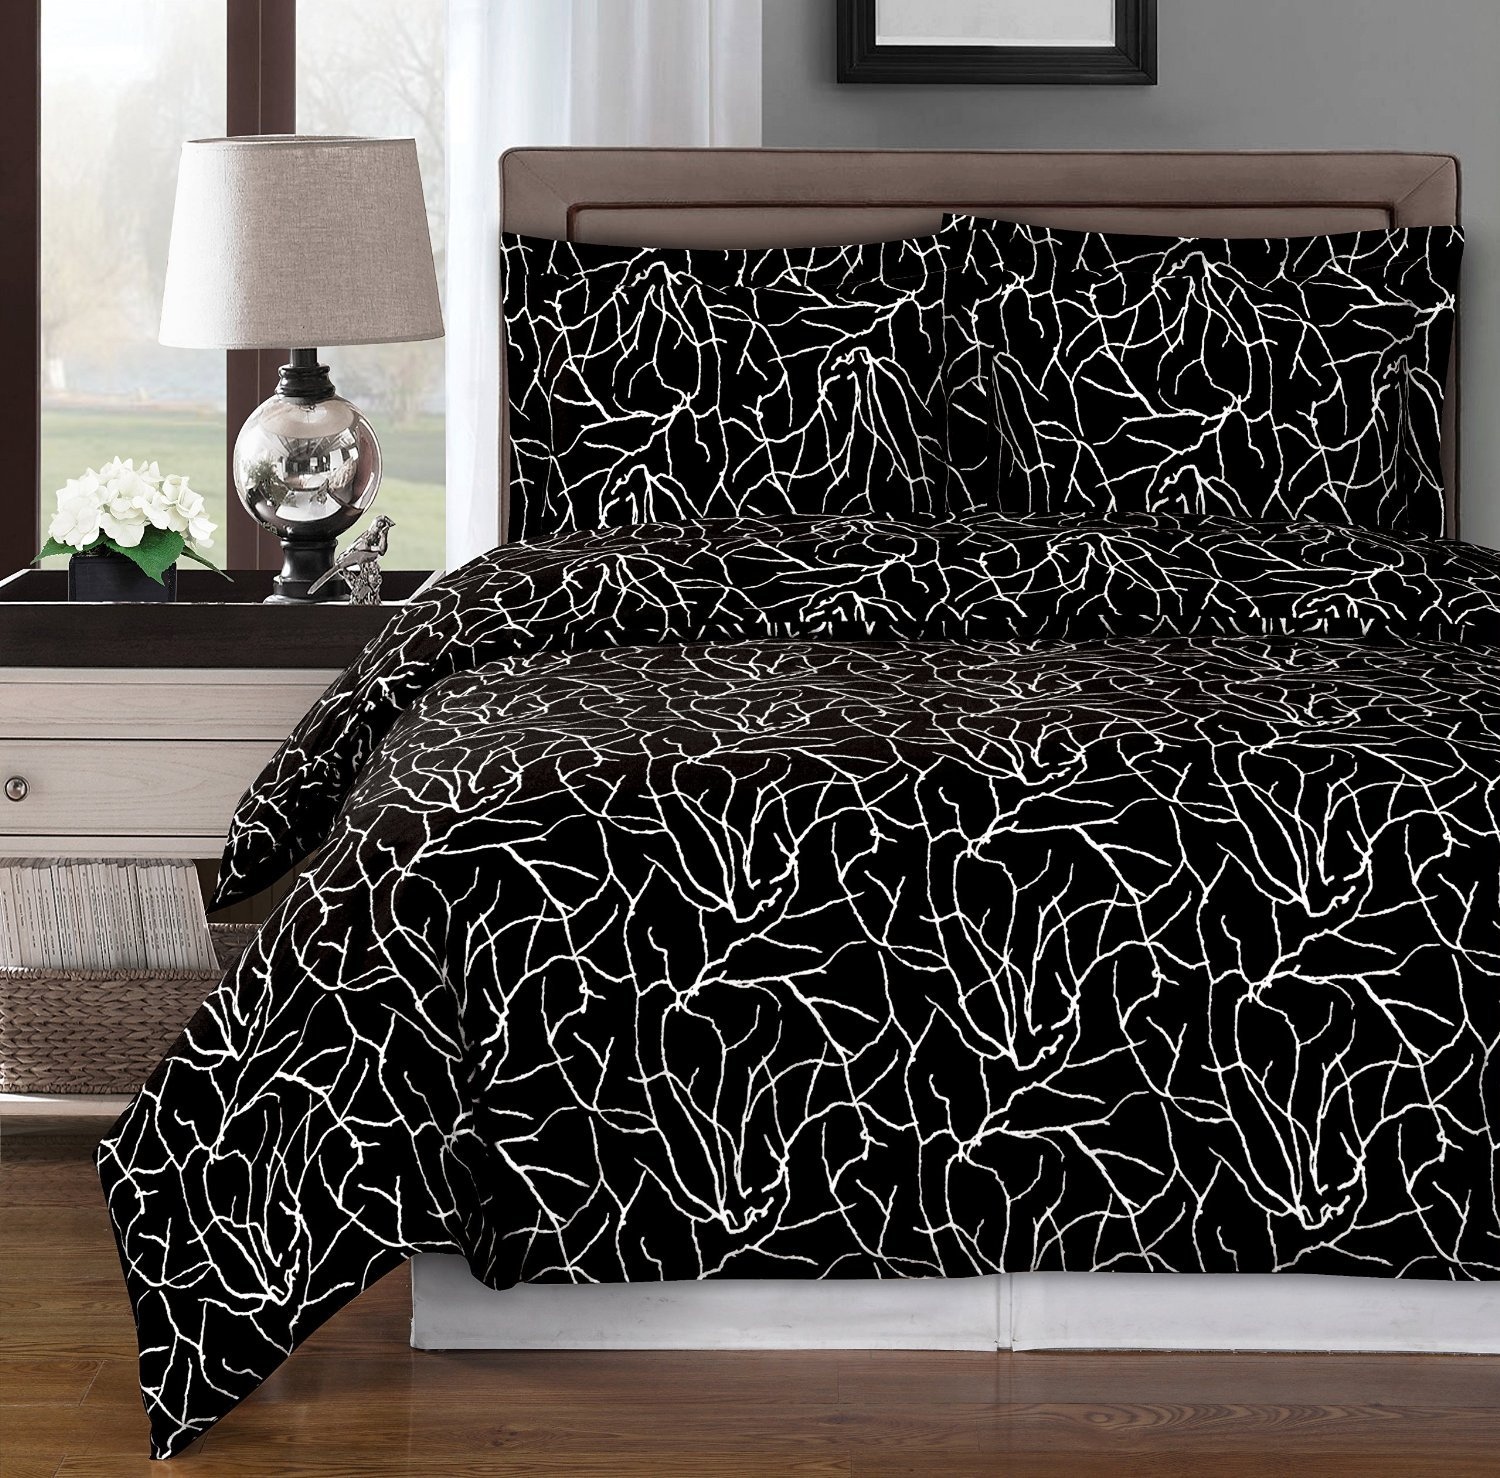 Bed sheet set black and white - Black And White Ema 3pc Full Queen Duvet Cover Set